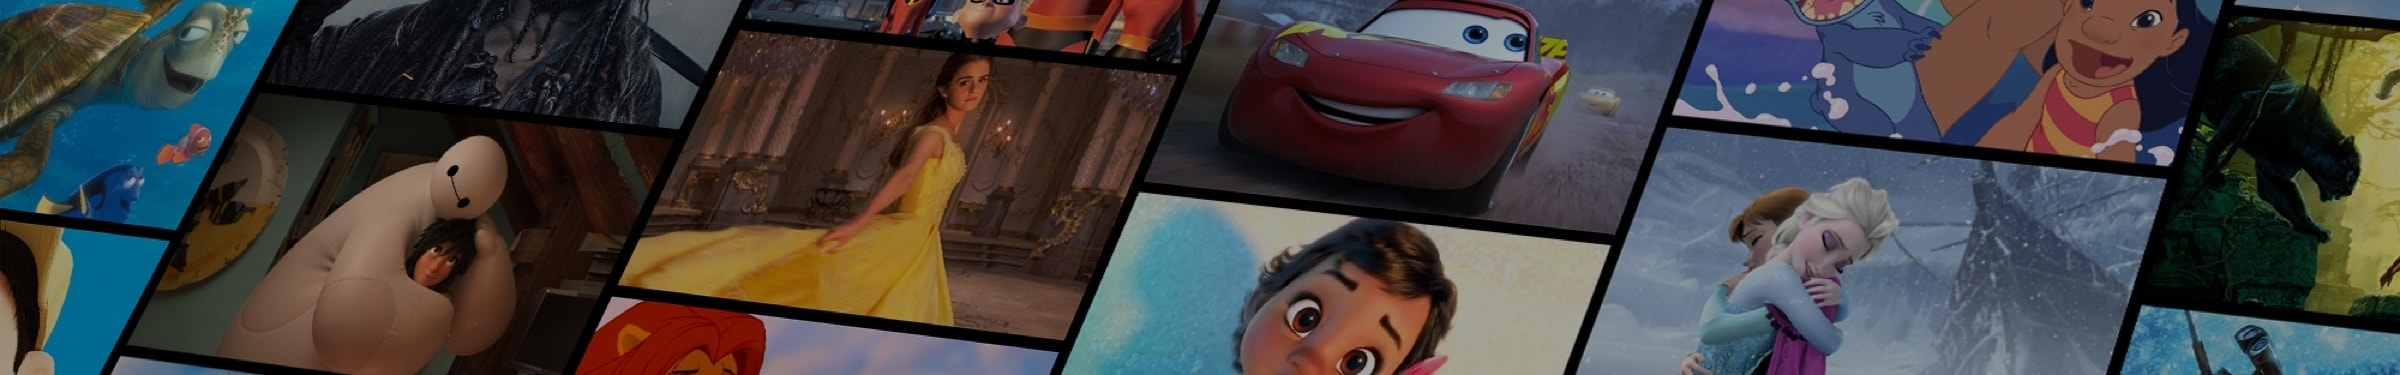 Disney | Releases to Download and Keep